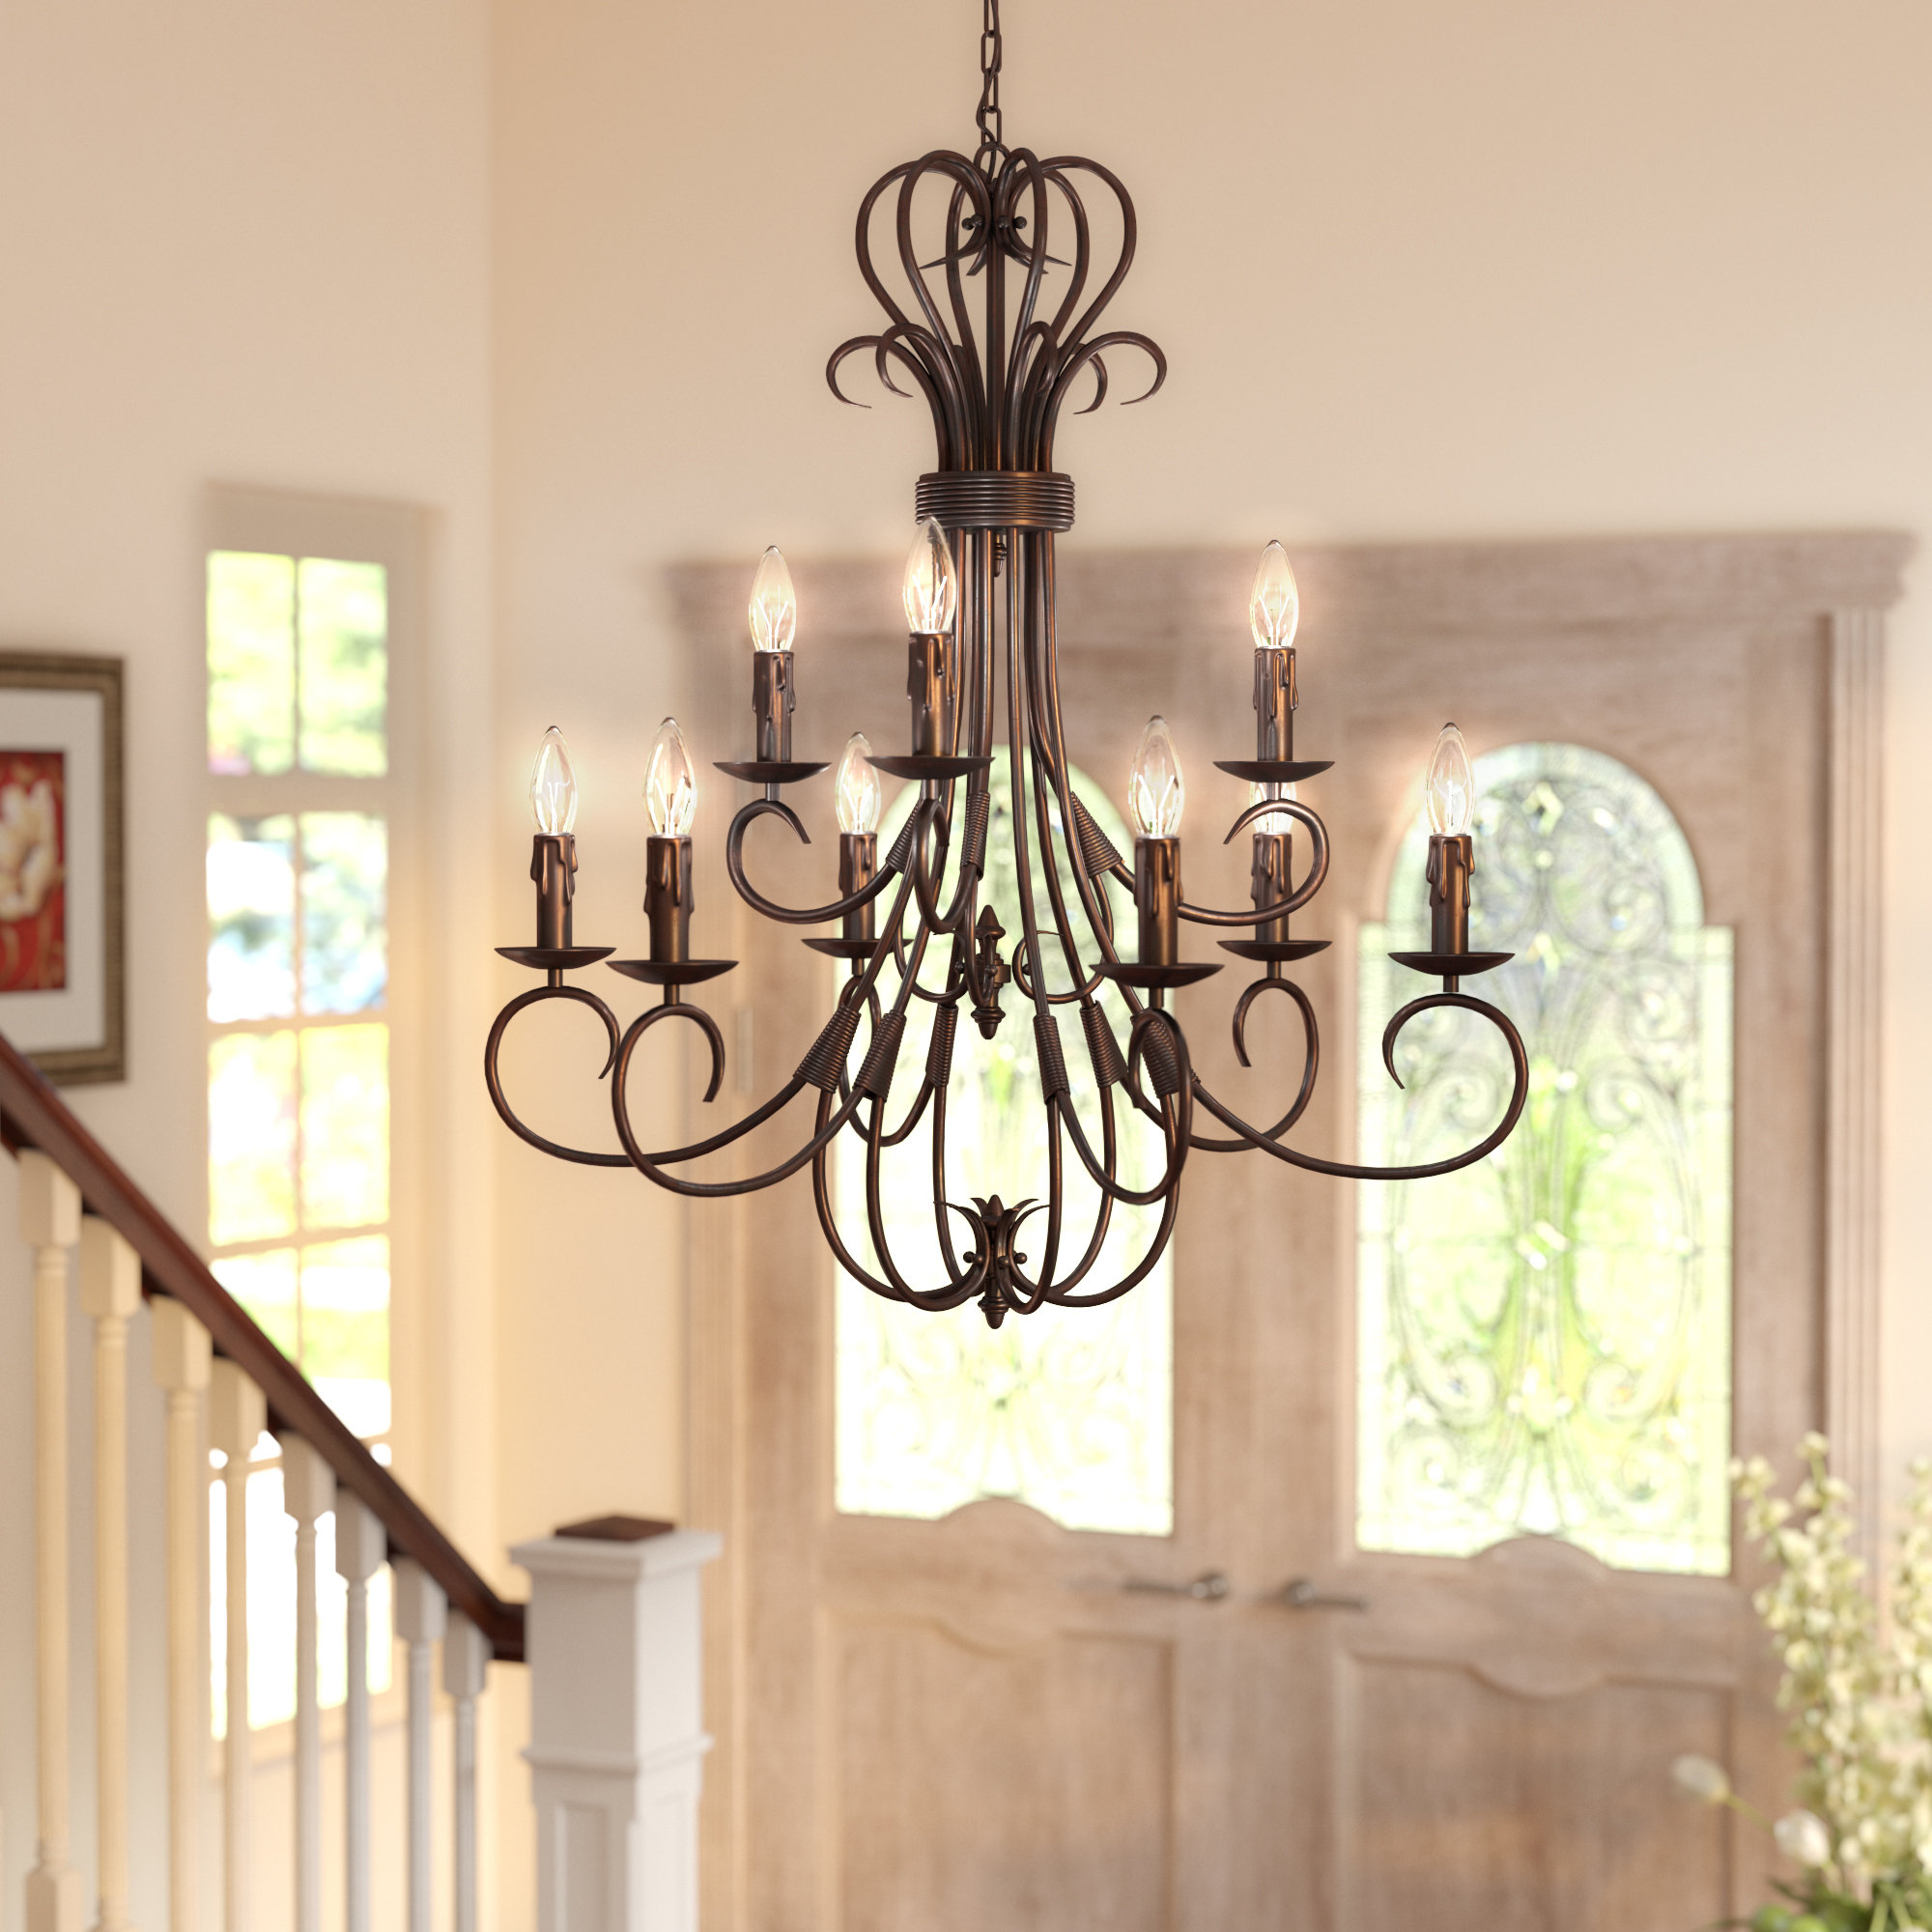 Gaines 9 Light Candle Style Chandeliers Pertaining To Best And Newest Gaines 9 Light Candle Style Chandelier (Gallery 2 of 20)